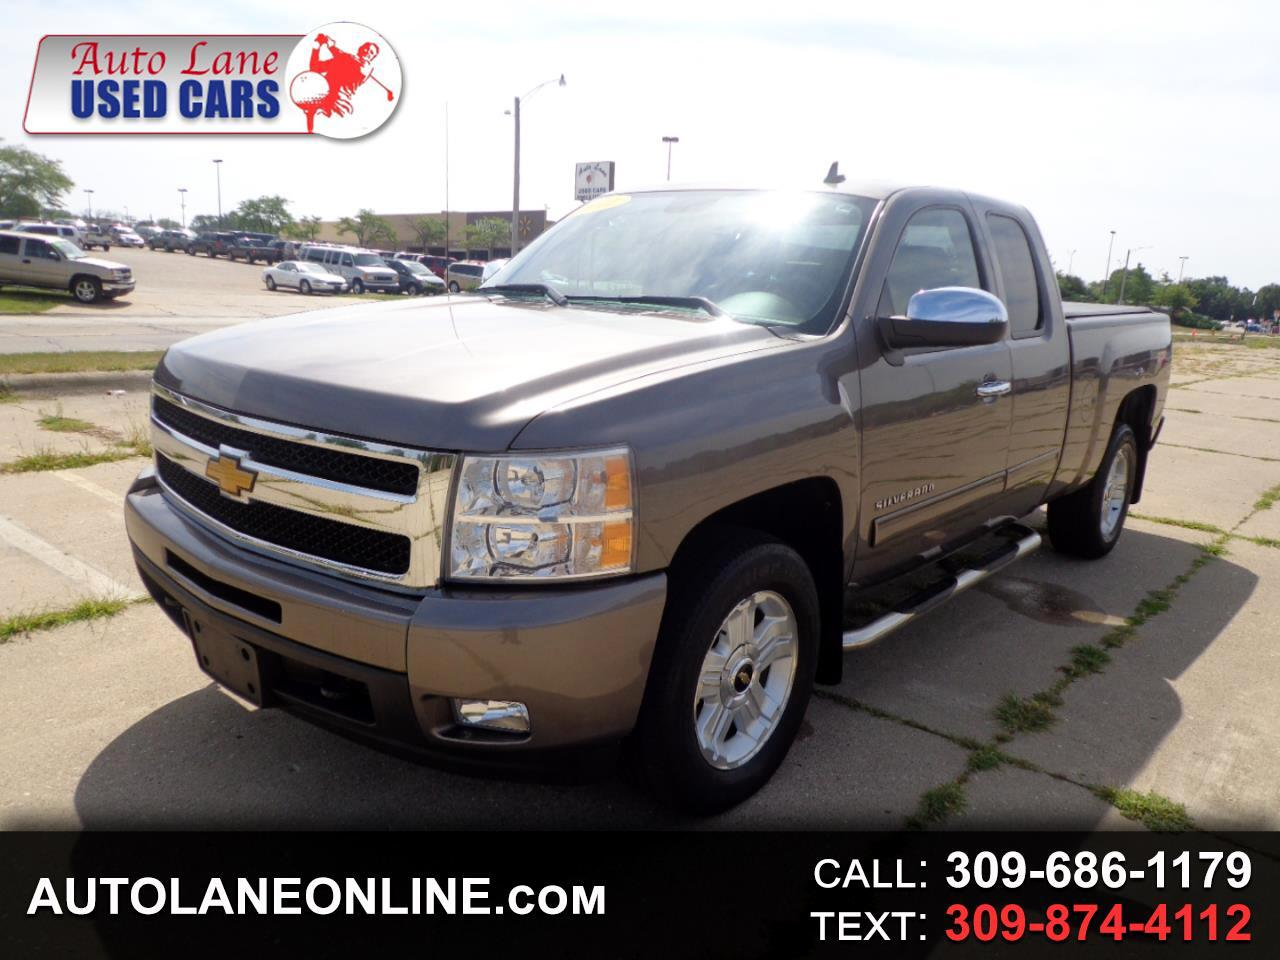 Car Dealerships Peoria Il >> Buy Here Pay Here Cars For Sale Peoria Il 61604 Auto Lane